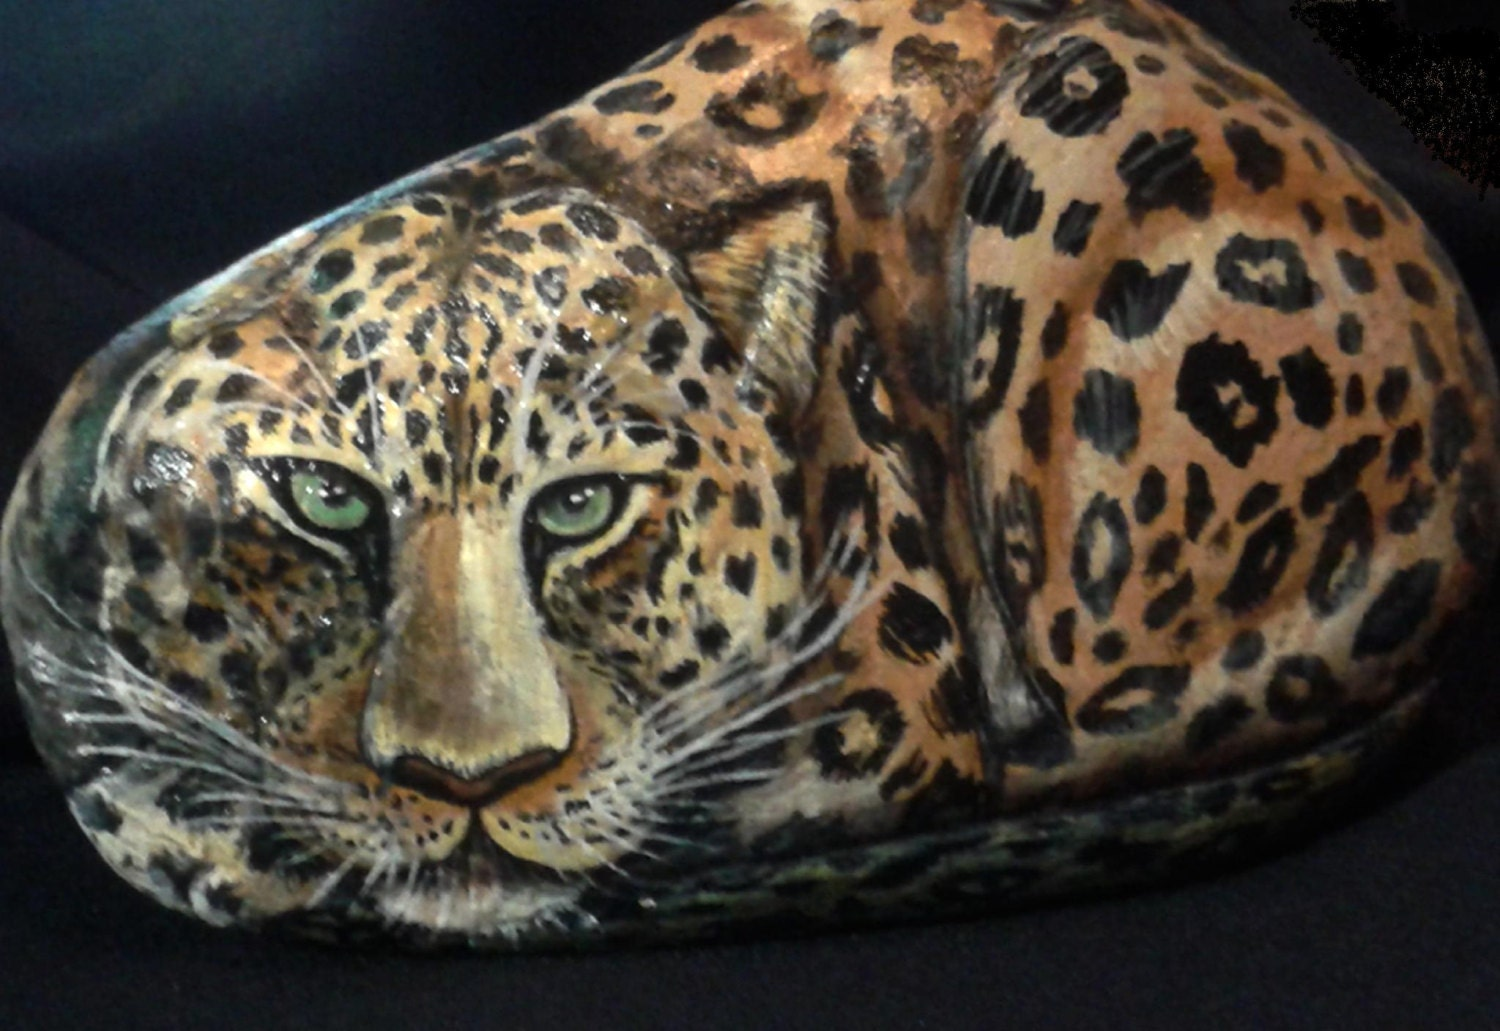 painted stones river rock leopard wild cats animal